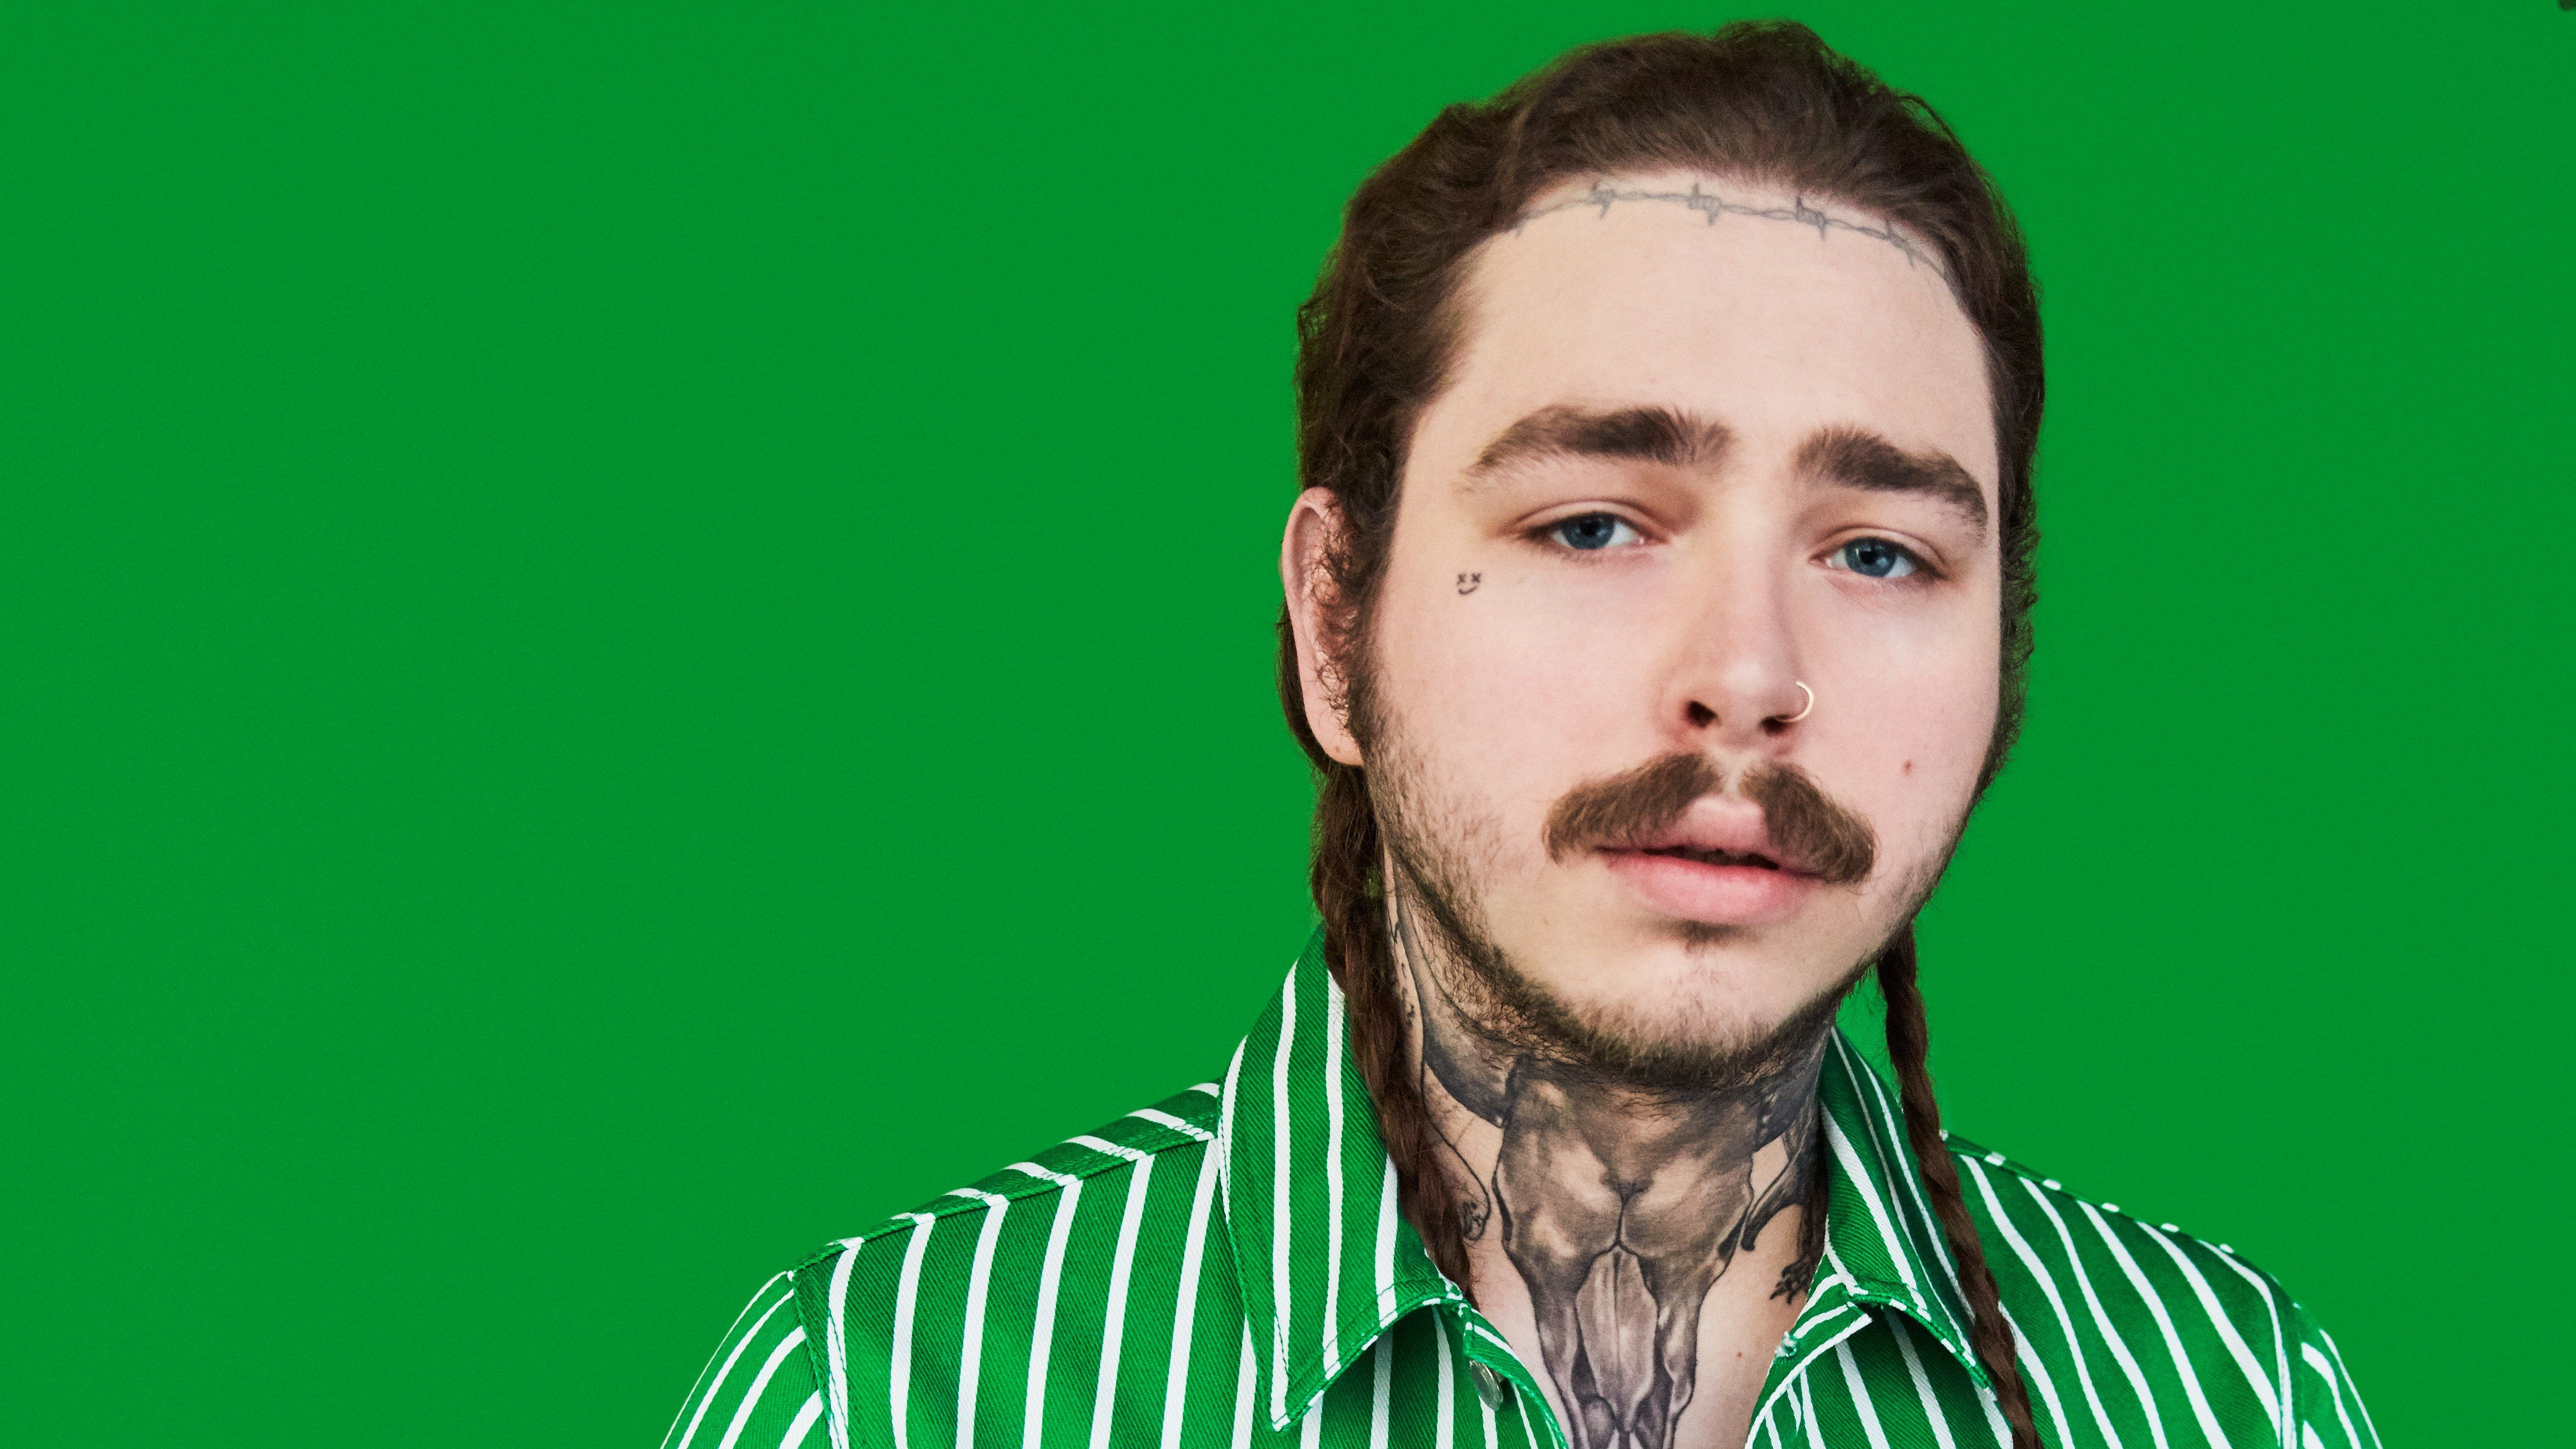 Post Malone Computer Wallpapers - Top Free Post Malone